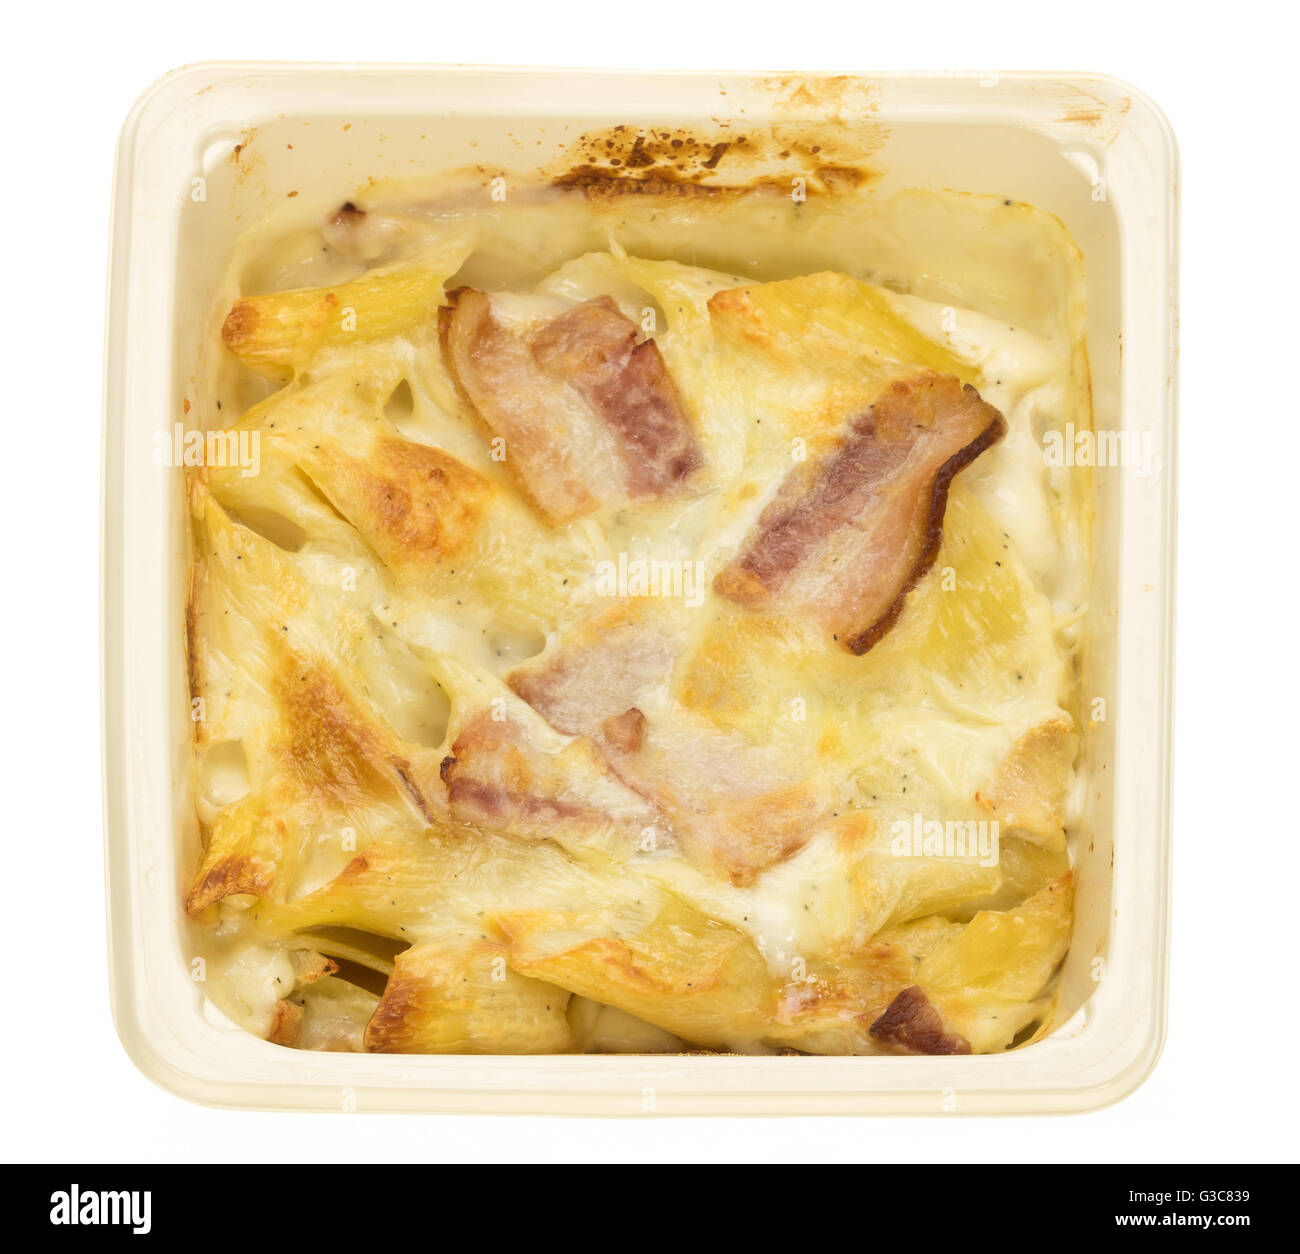 A baked chicken and bacon pasta ready meal - white background - Stock Image